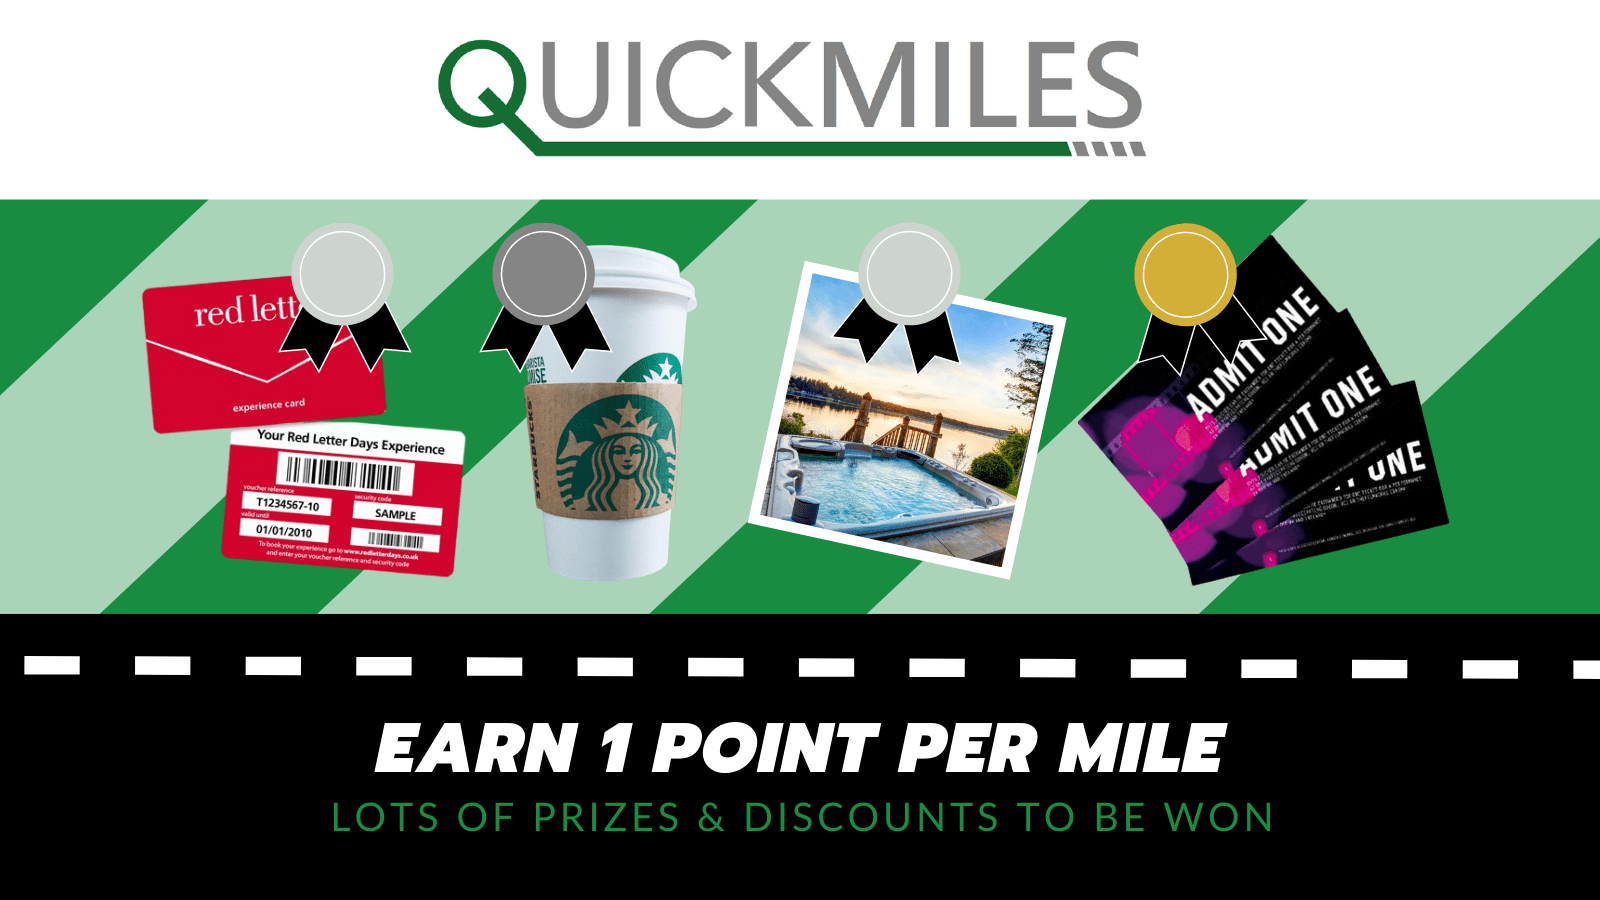 Same-day delivery Quickmiles